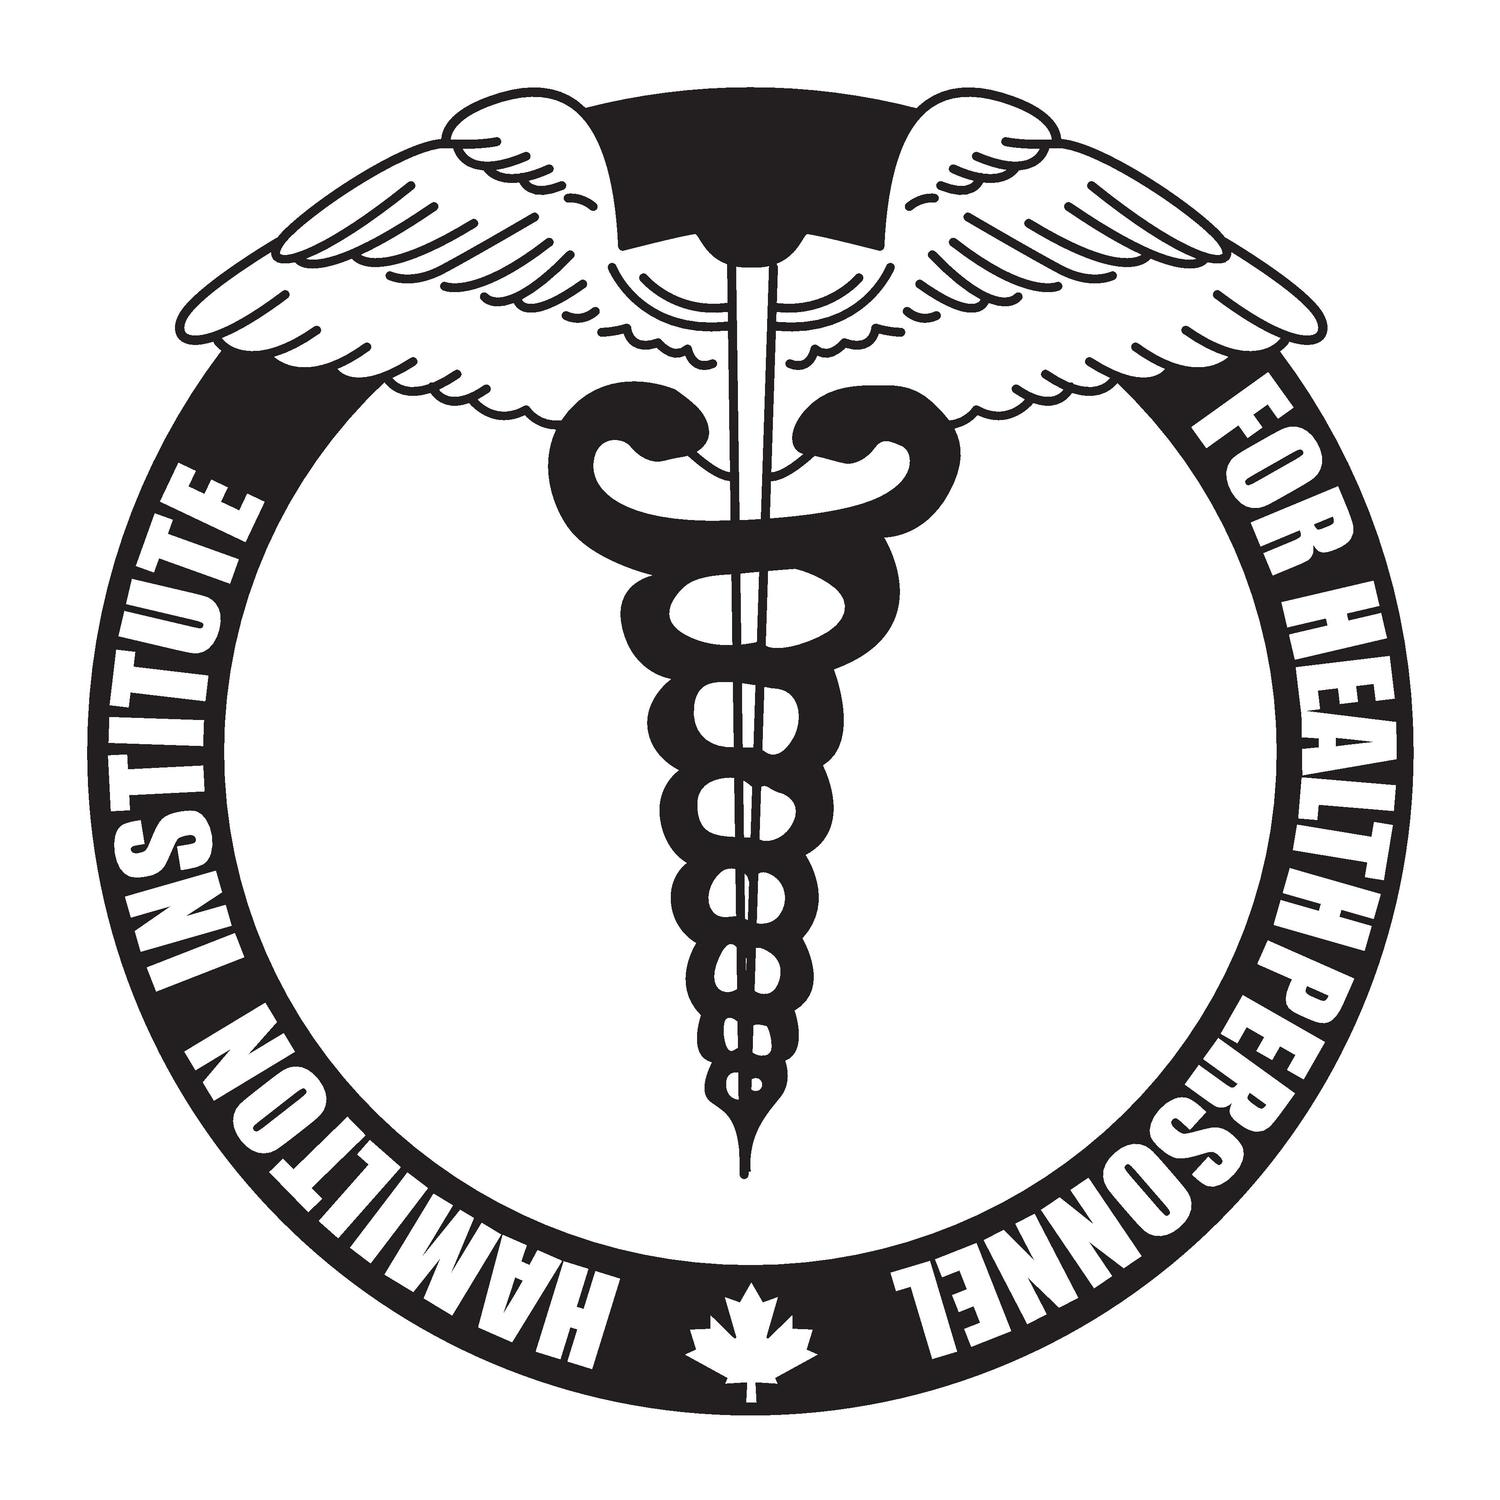 Hamilton Institute for Health Personnel